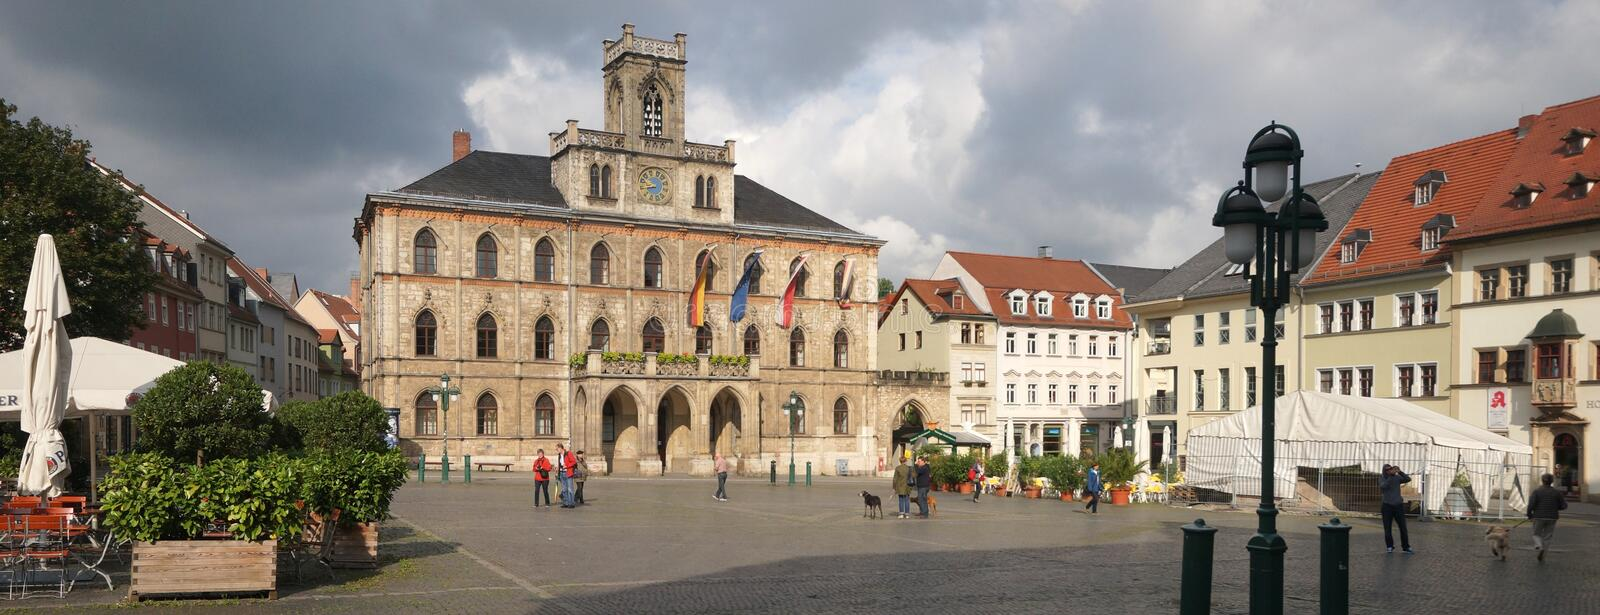 Weimar Town Hall. The Neo-Gothic town hall of Weimar was re-built in 1841 after destruction by fire. The city of Weimar in the federal state of Thuringia stock photo